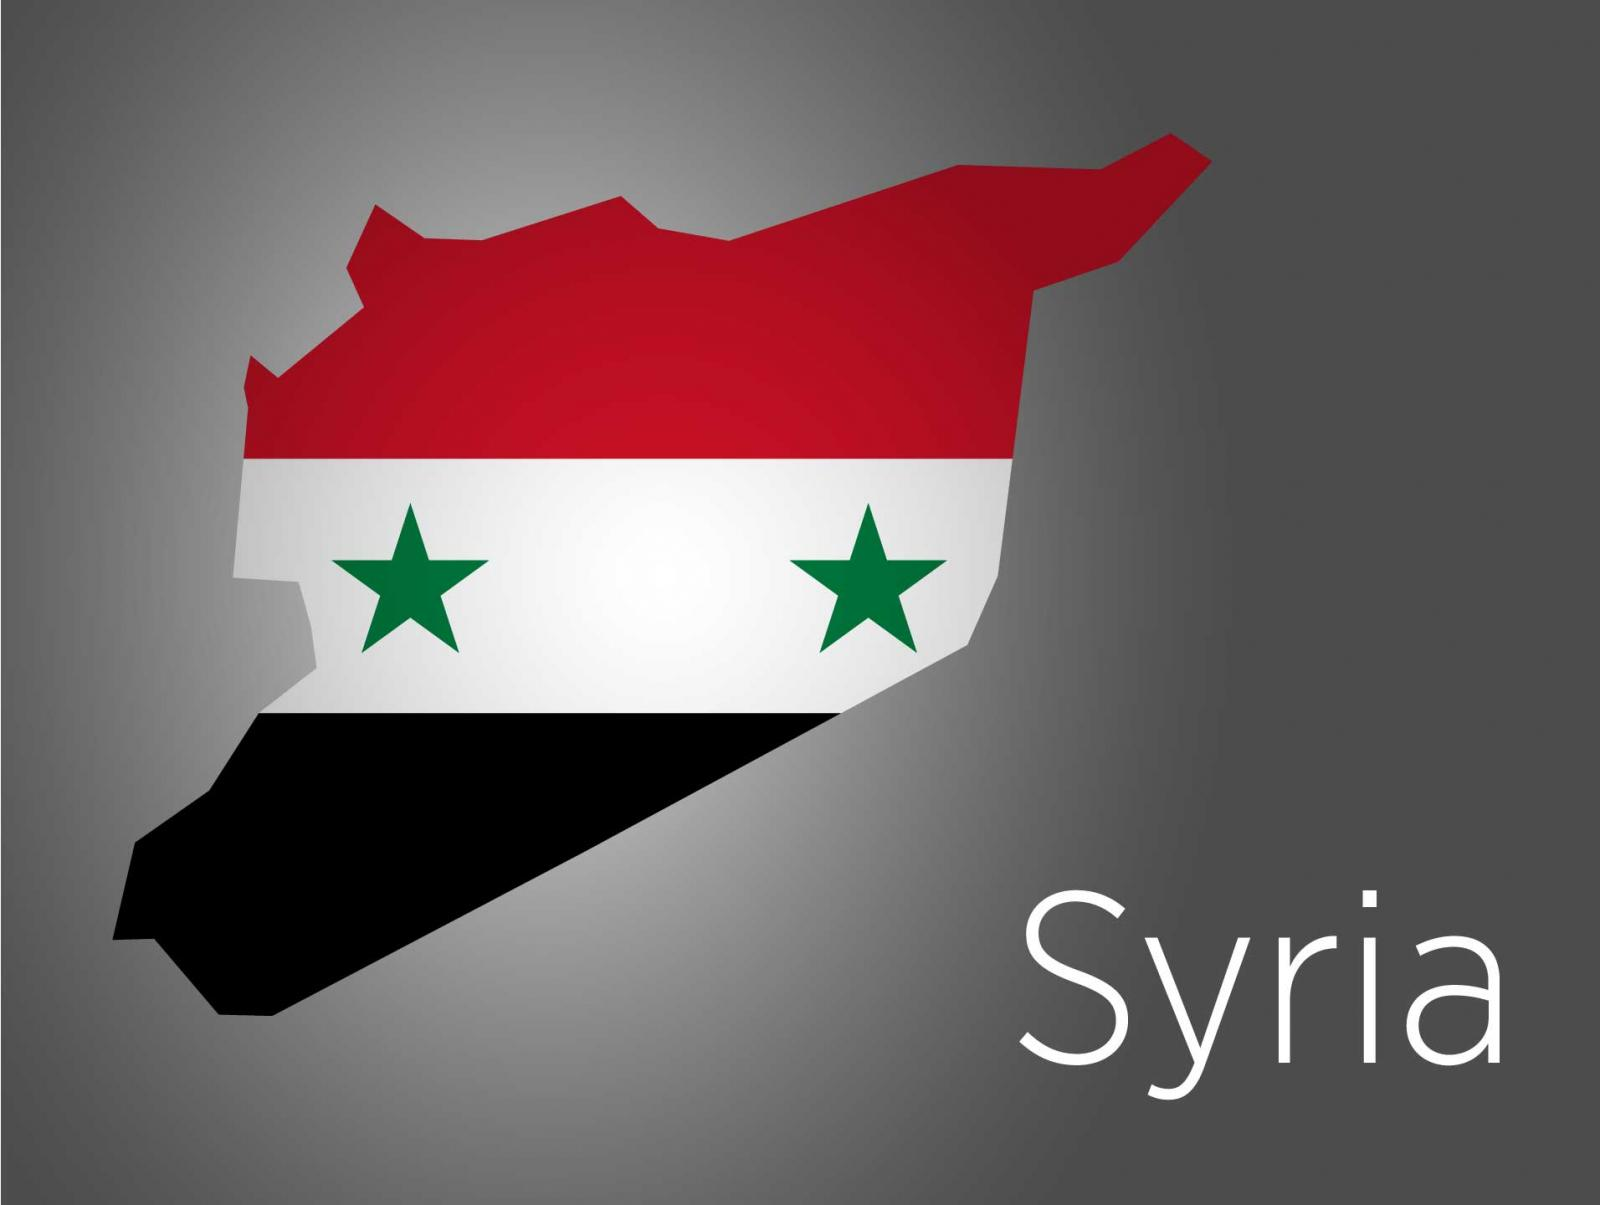 25 facts about Syria